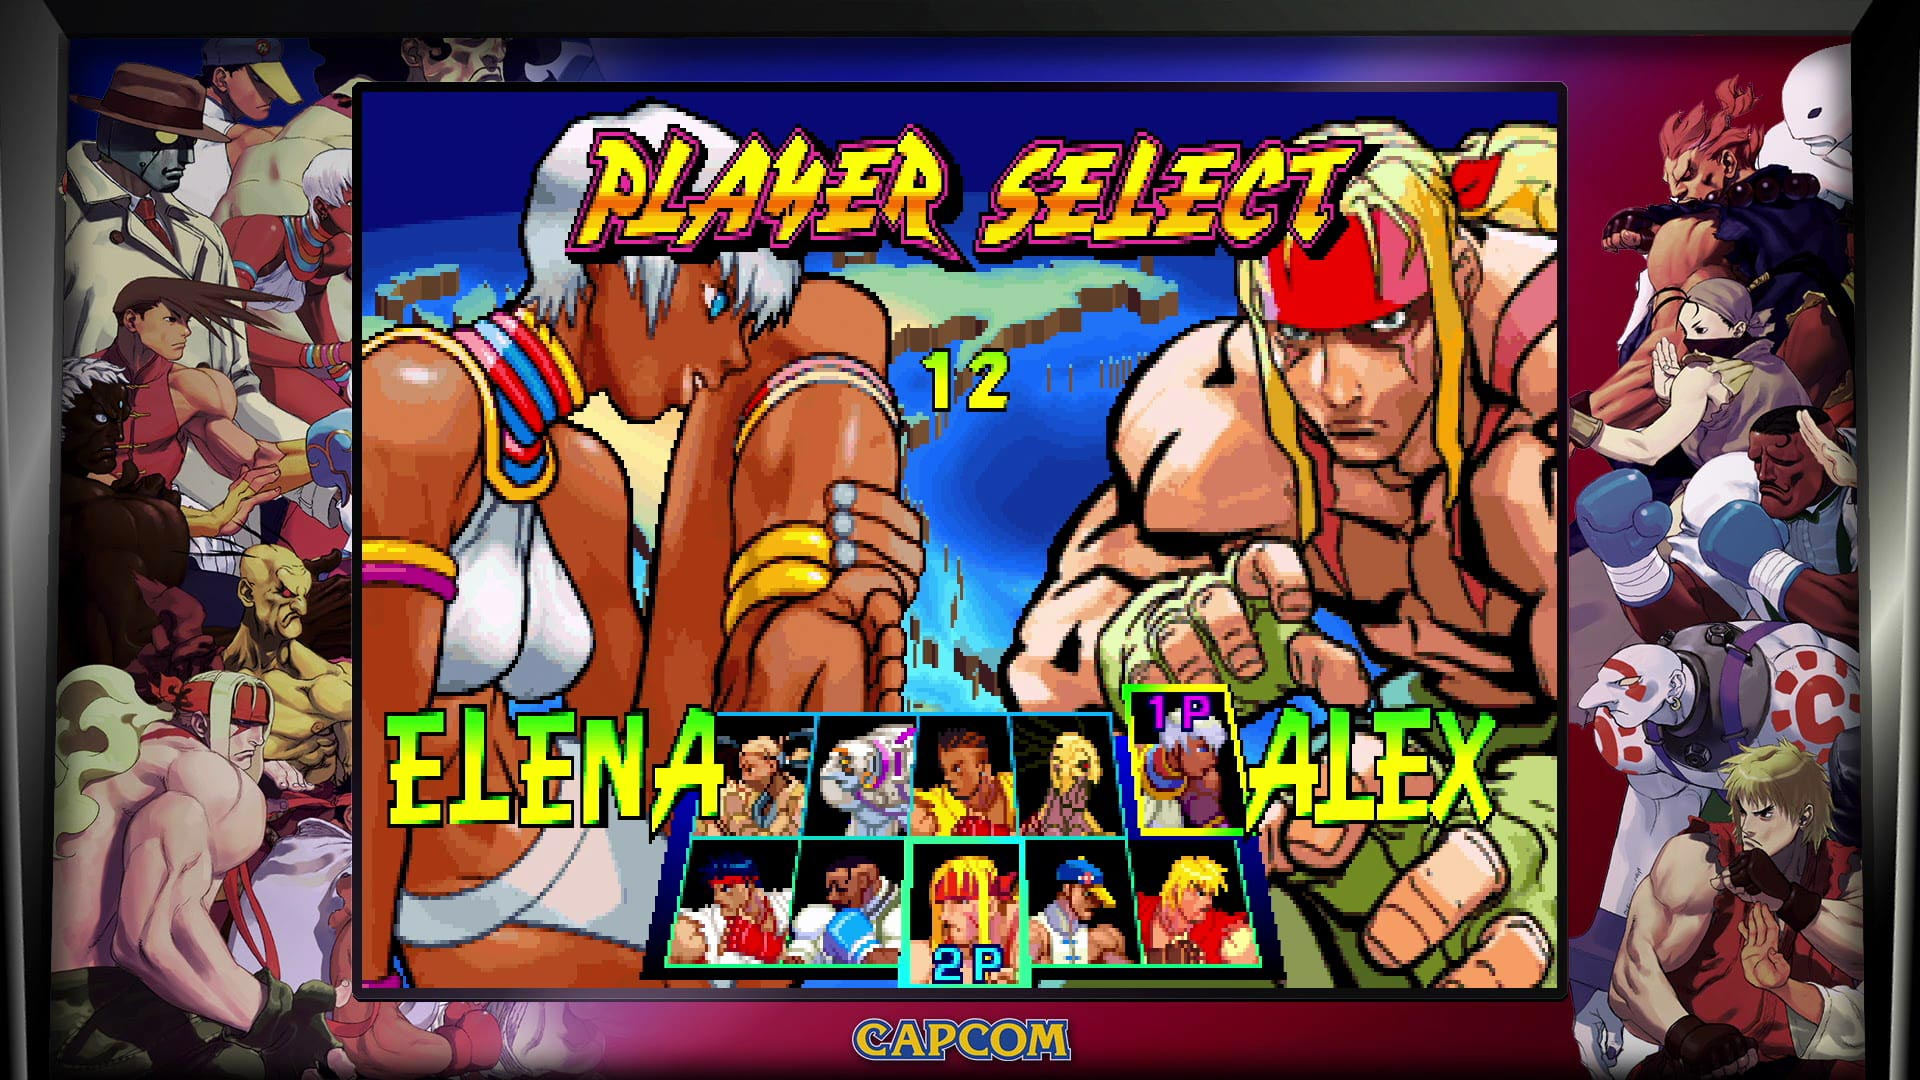 Street Fighter 30th Anniversary Collection images 11 out of 17 image gallery